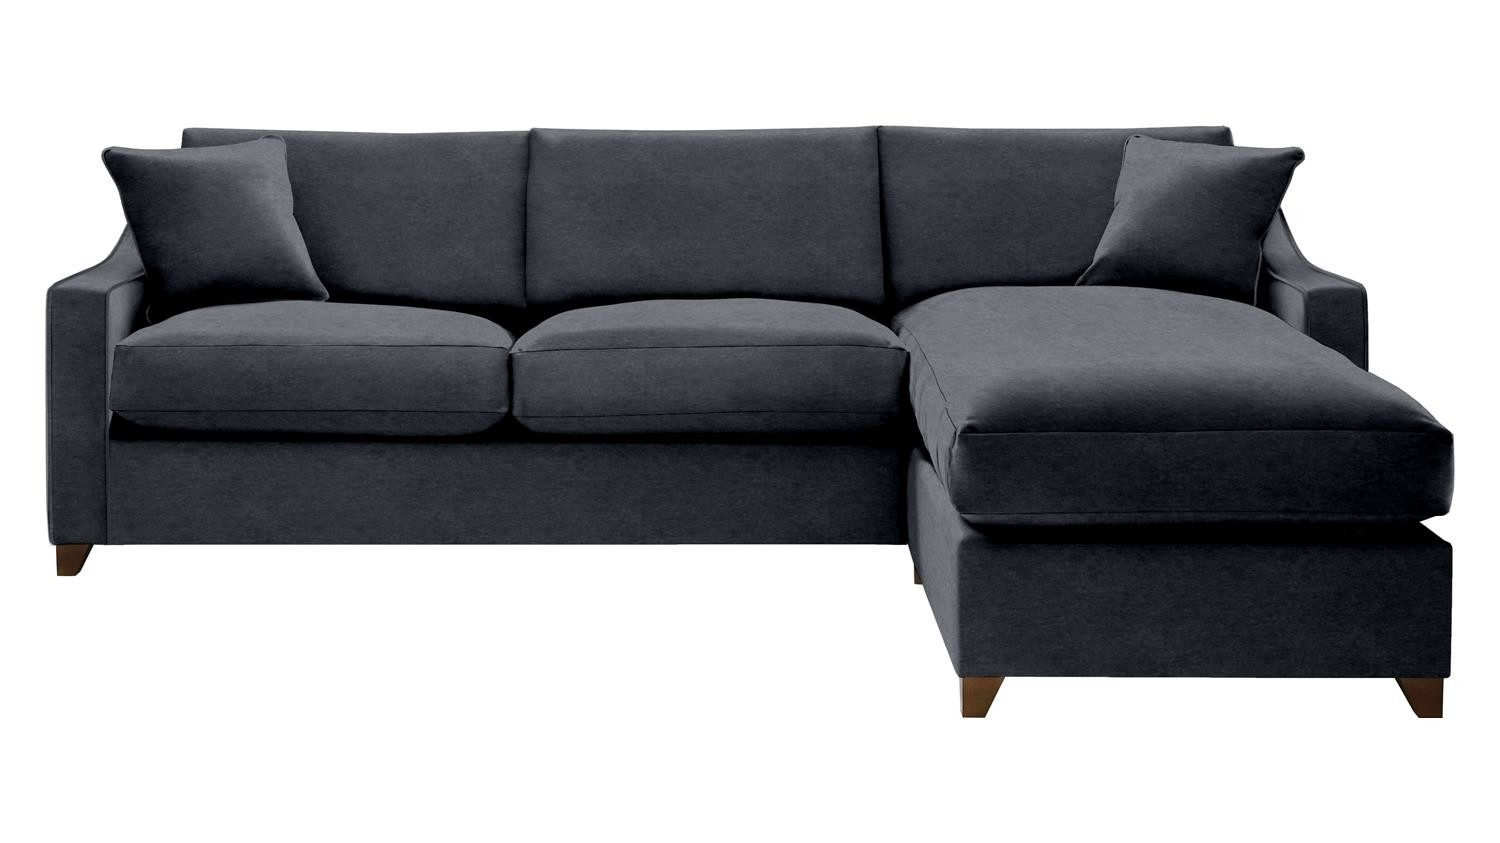 The Bermerton 4 Seater Right Chaise Storage Sofa Bed